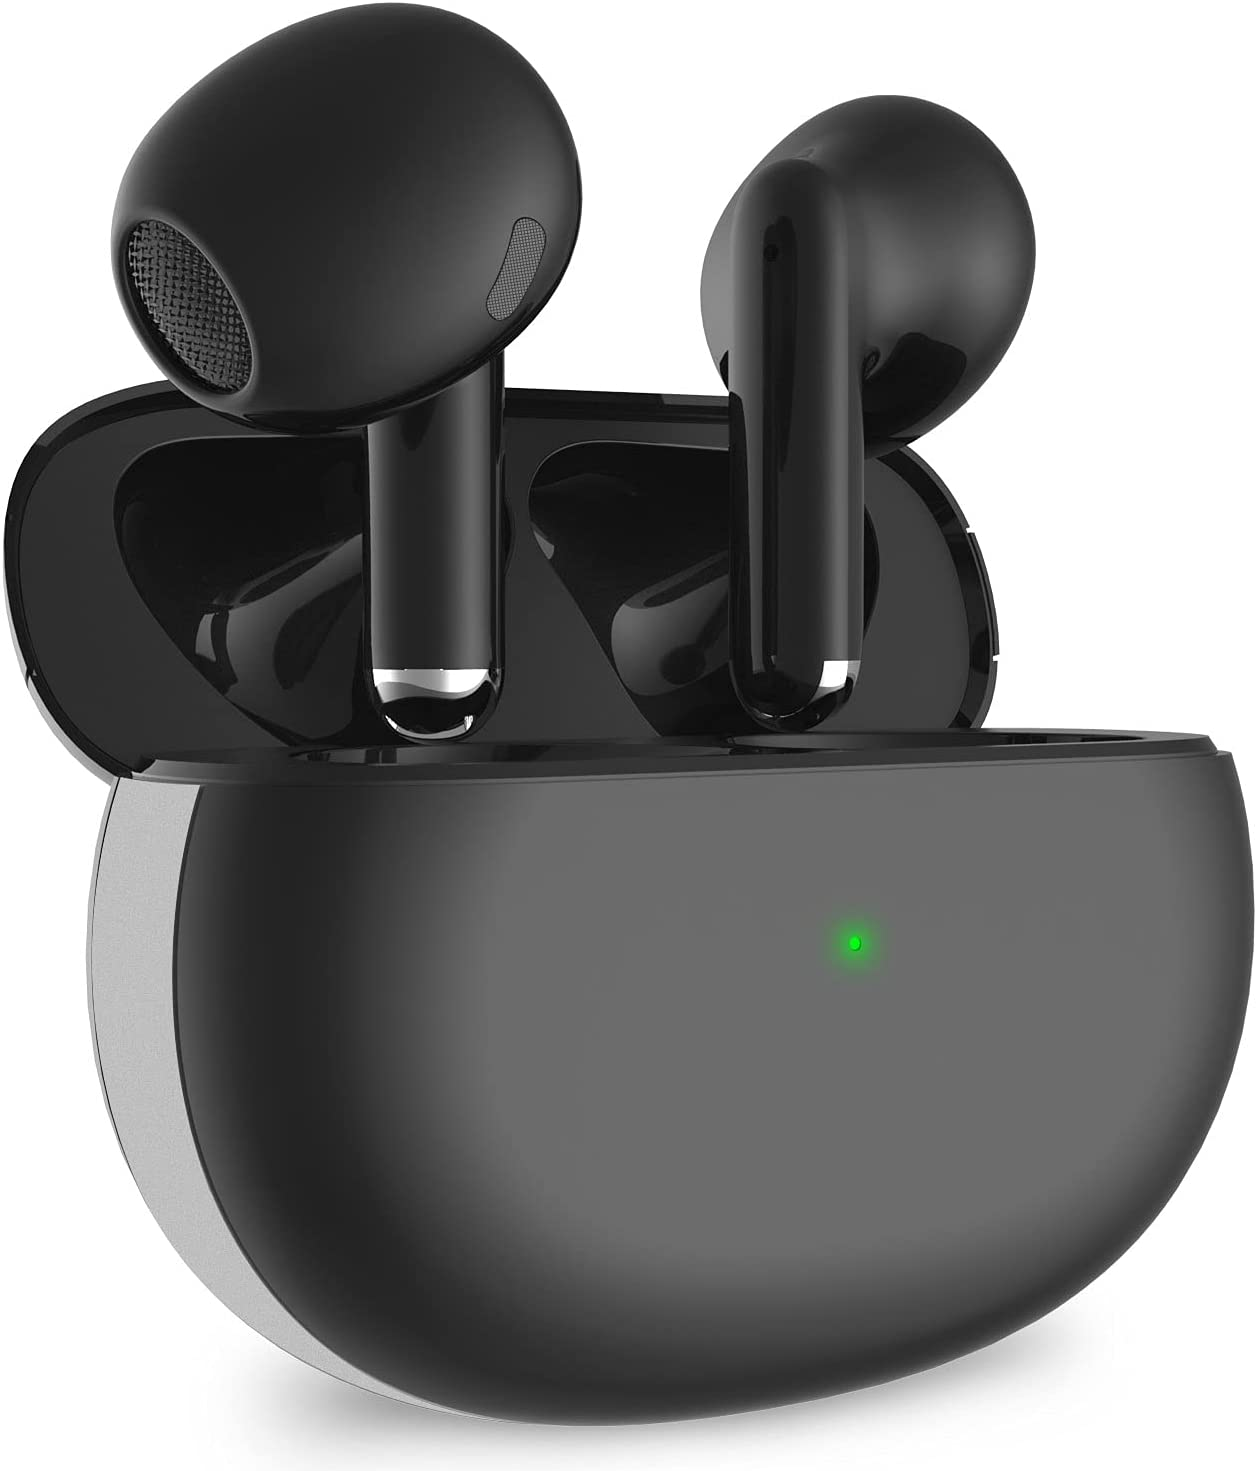 Wireless Earbuds Bluetooth 2021 spring and summer Popular products new Hi-Fi Stereo Noise Cancelli Earphones